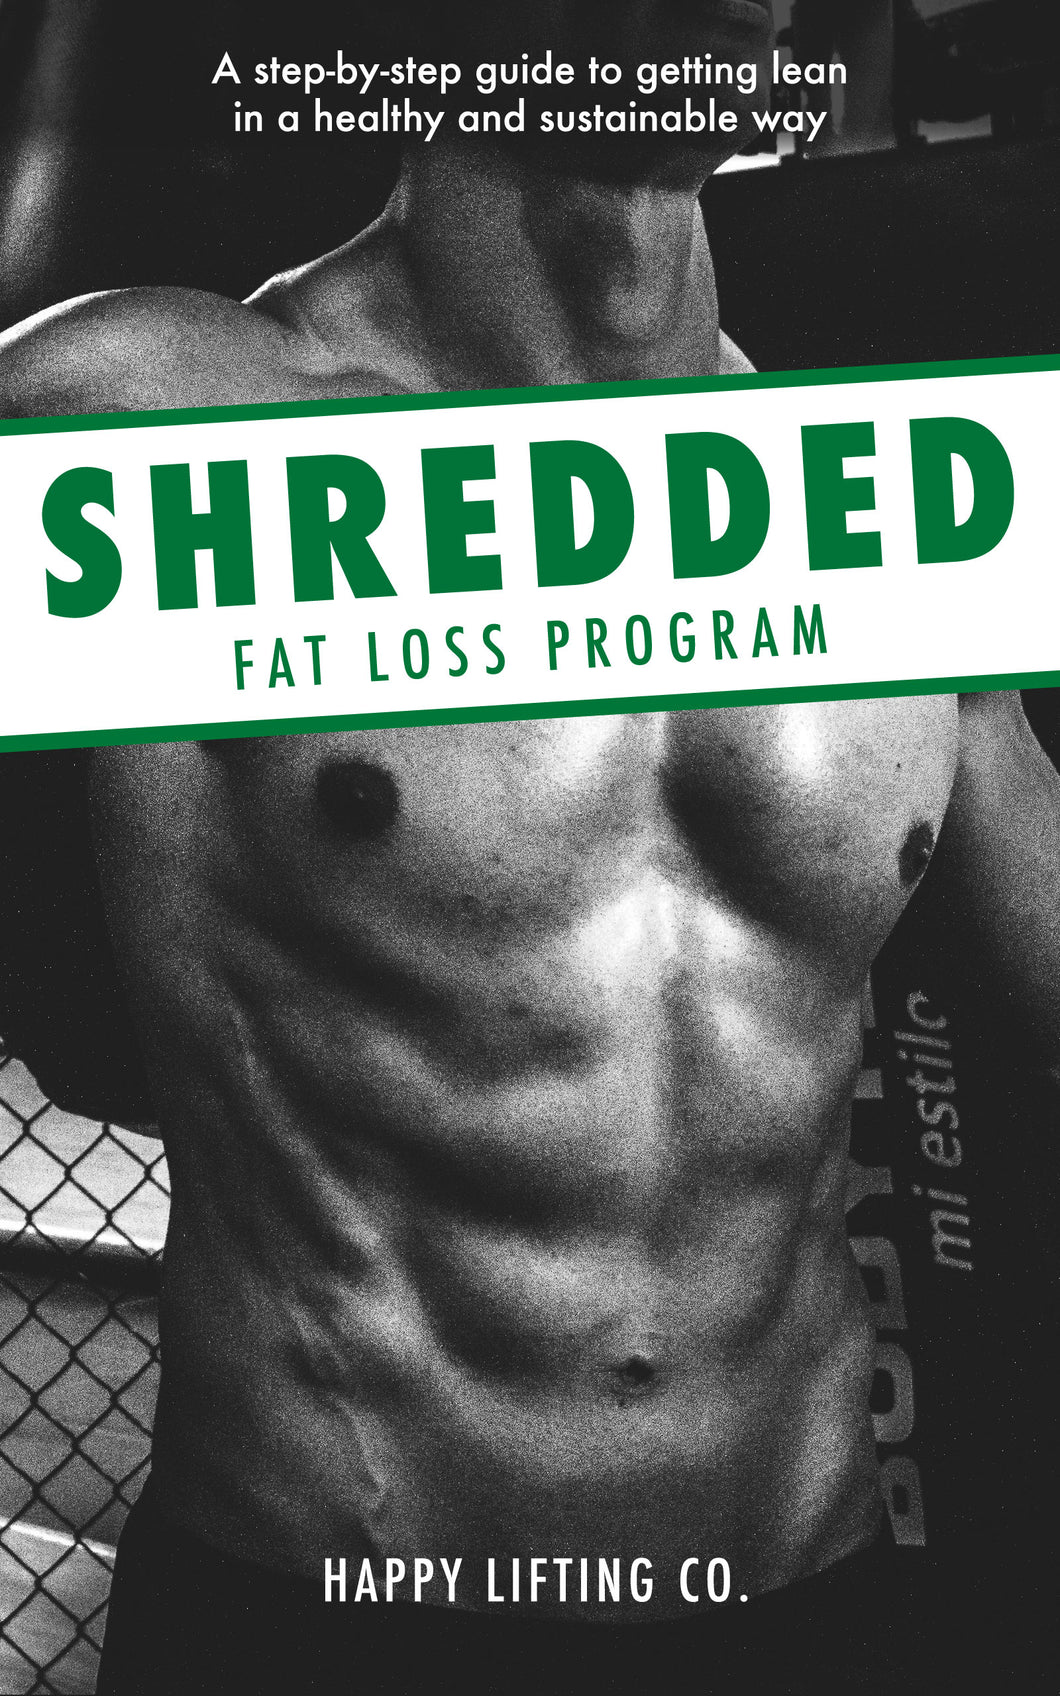 Shredded Fat Loss Program